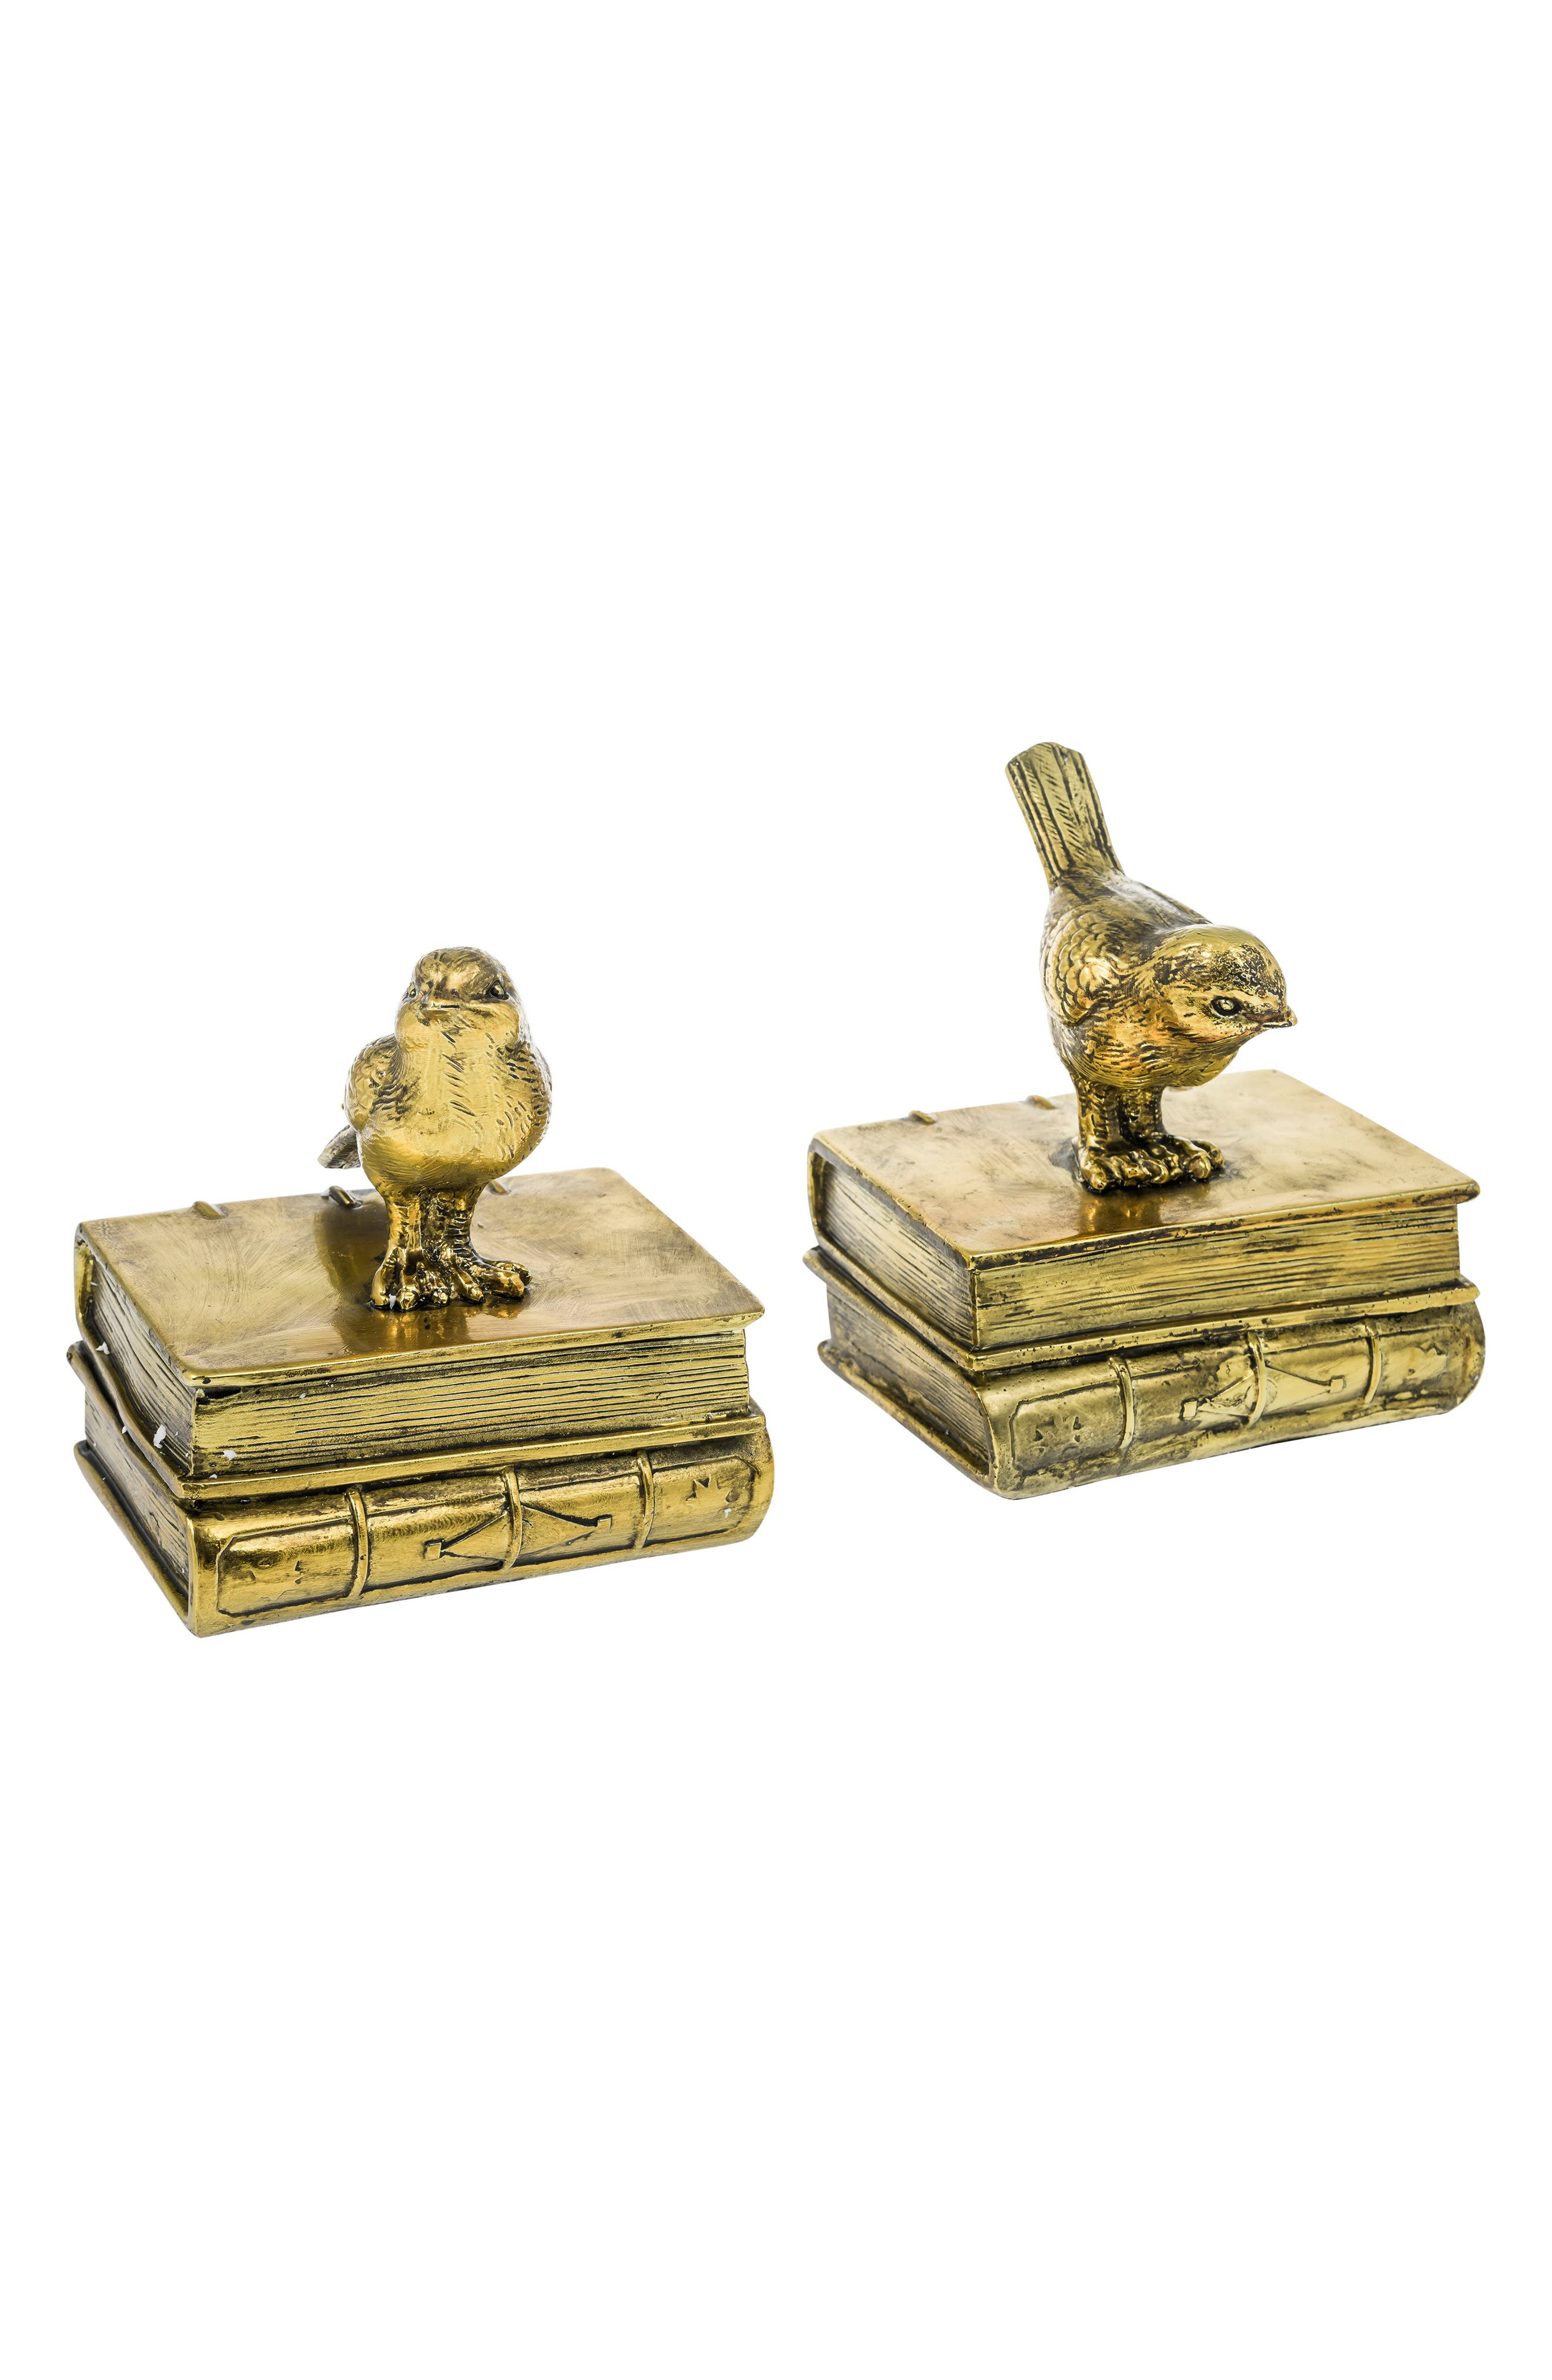 Deforest Set of 2 Bookends,                             Main thumbnail 1, color,                             710